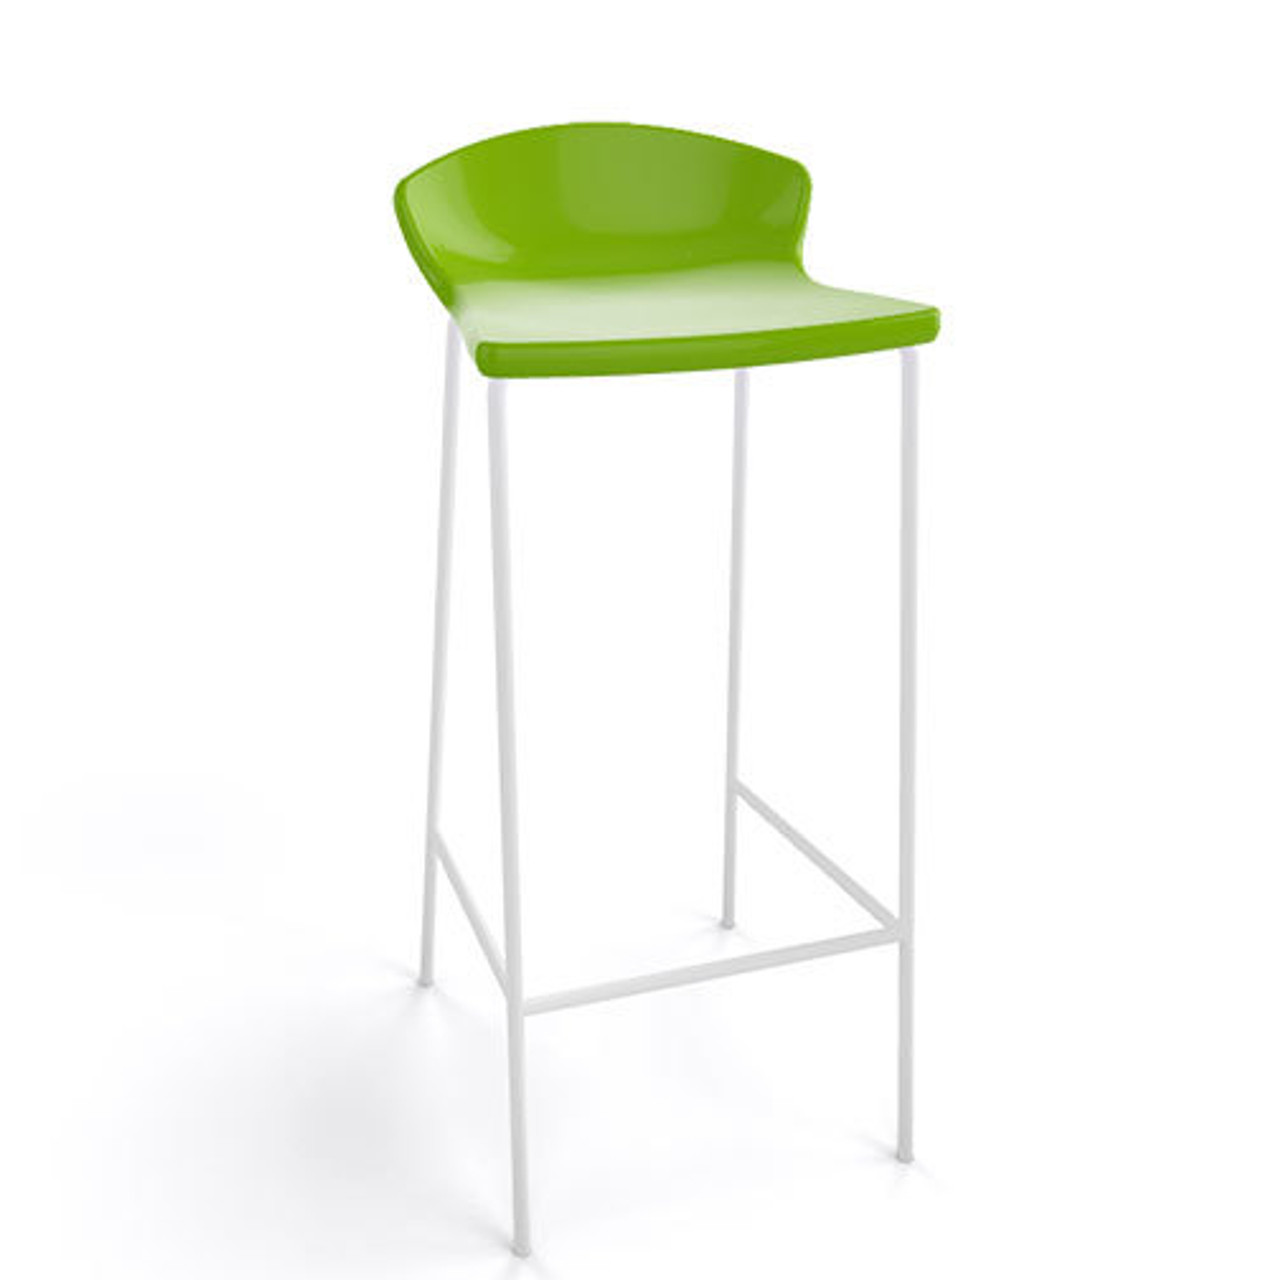 Magnuson Calma Bar Stools - Outdoor